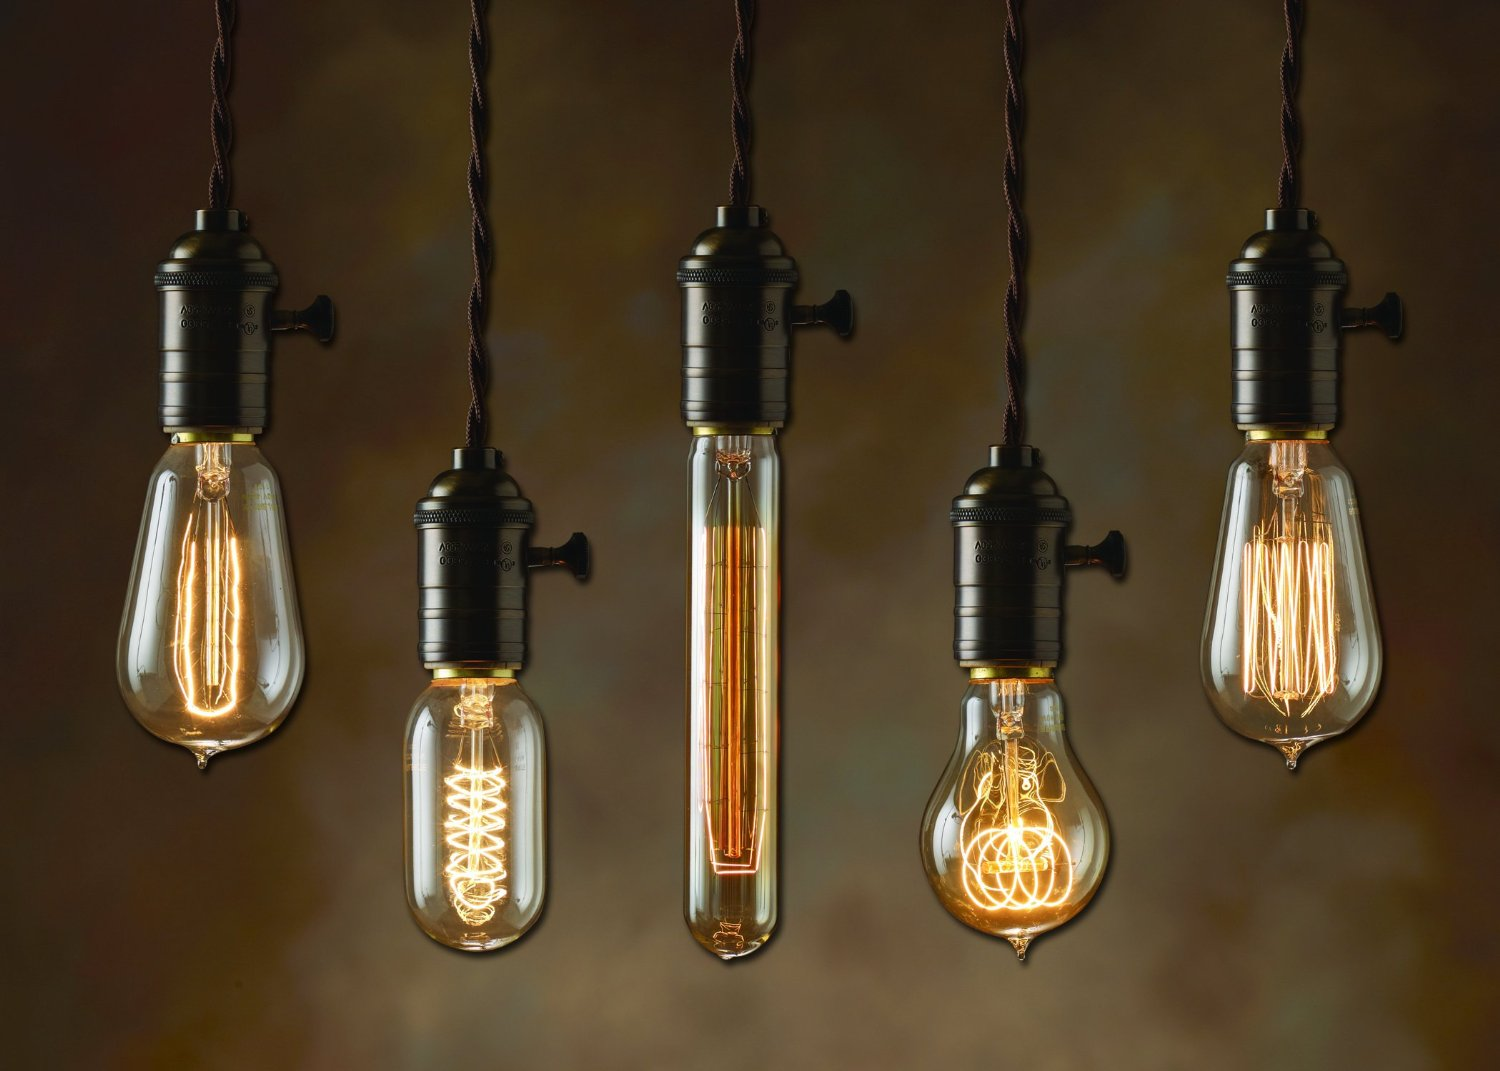 Vintage the best vintage lighting stores in uk the best vintage lighting stores in uk cover